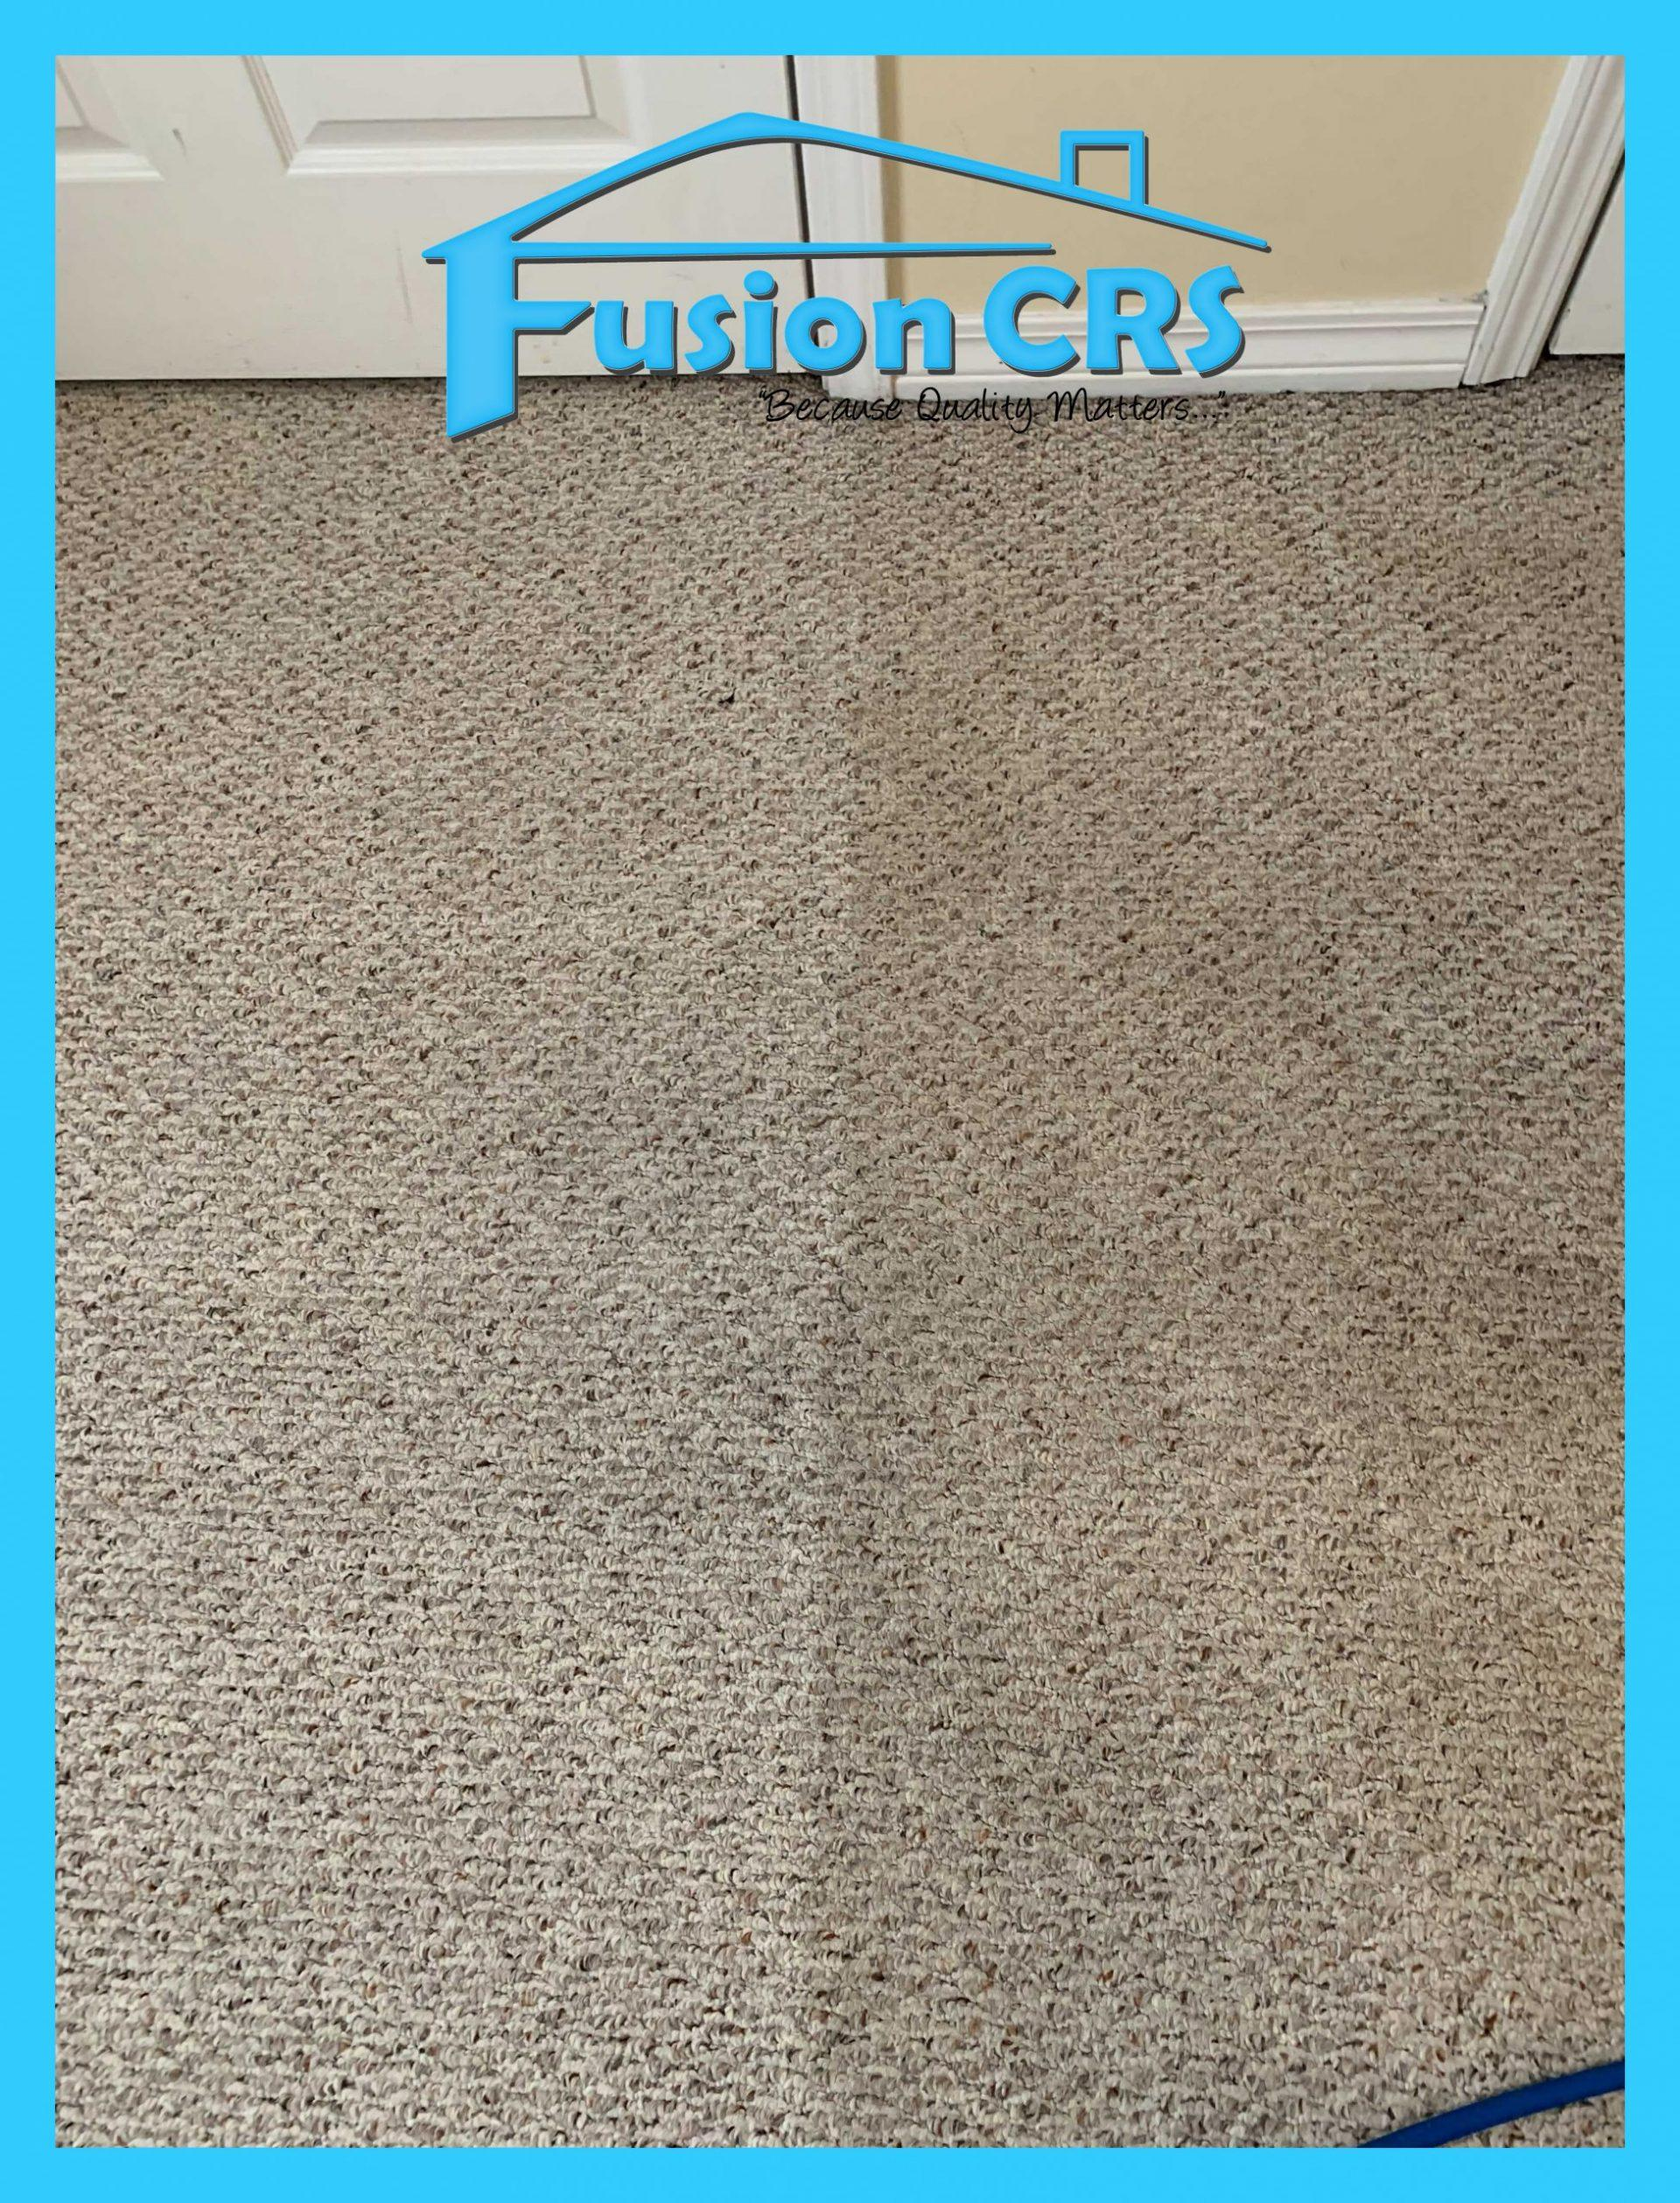 Dirty Carpet, Before and after